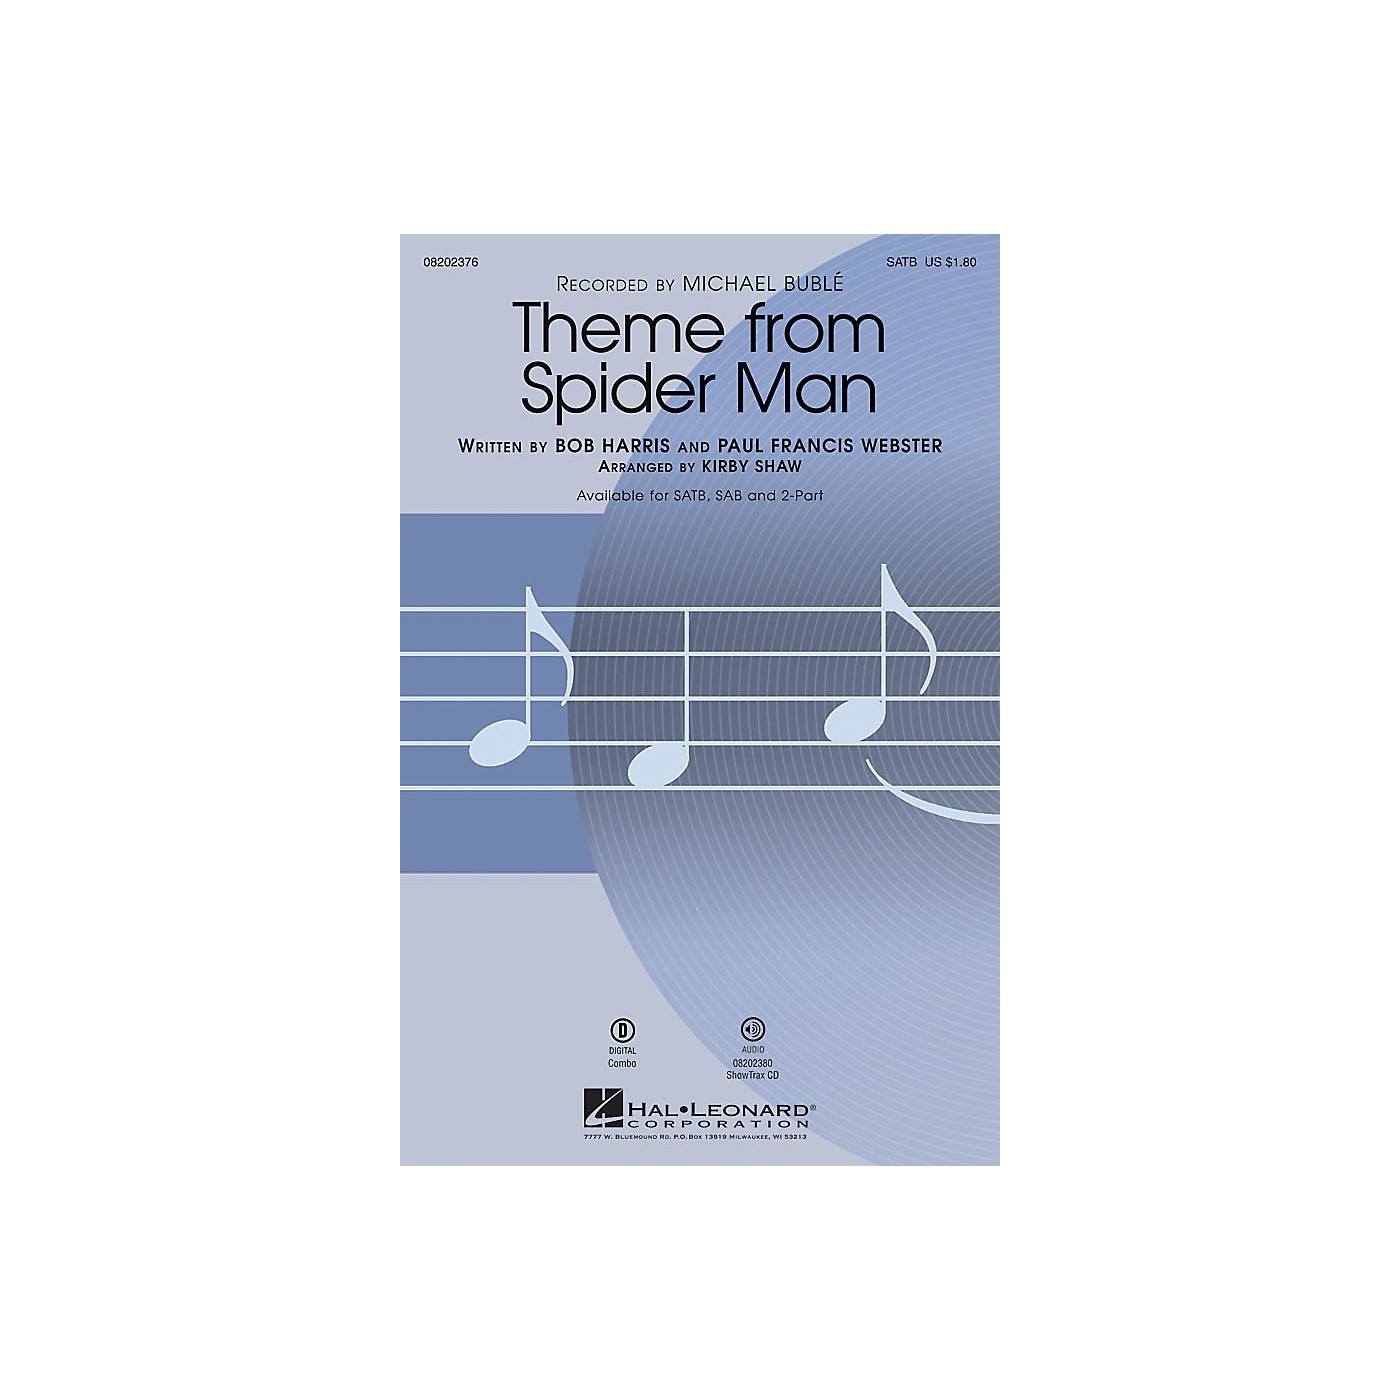 Hal Leonard Theme from Spider Man SATB by Michael Bublé arranged by Kirby Shaw thumbnail